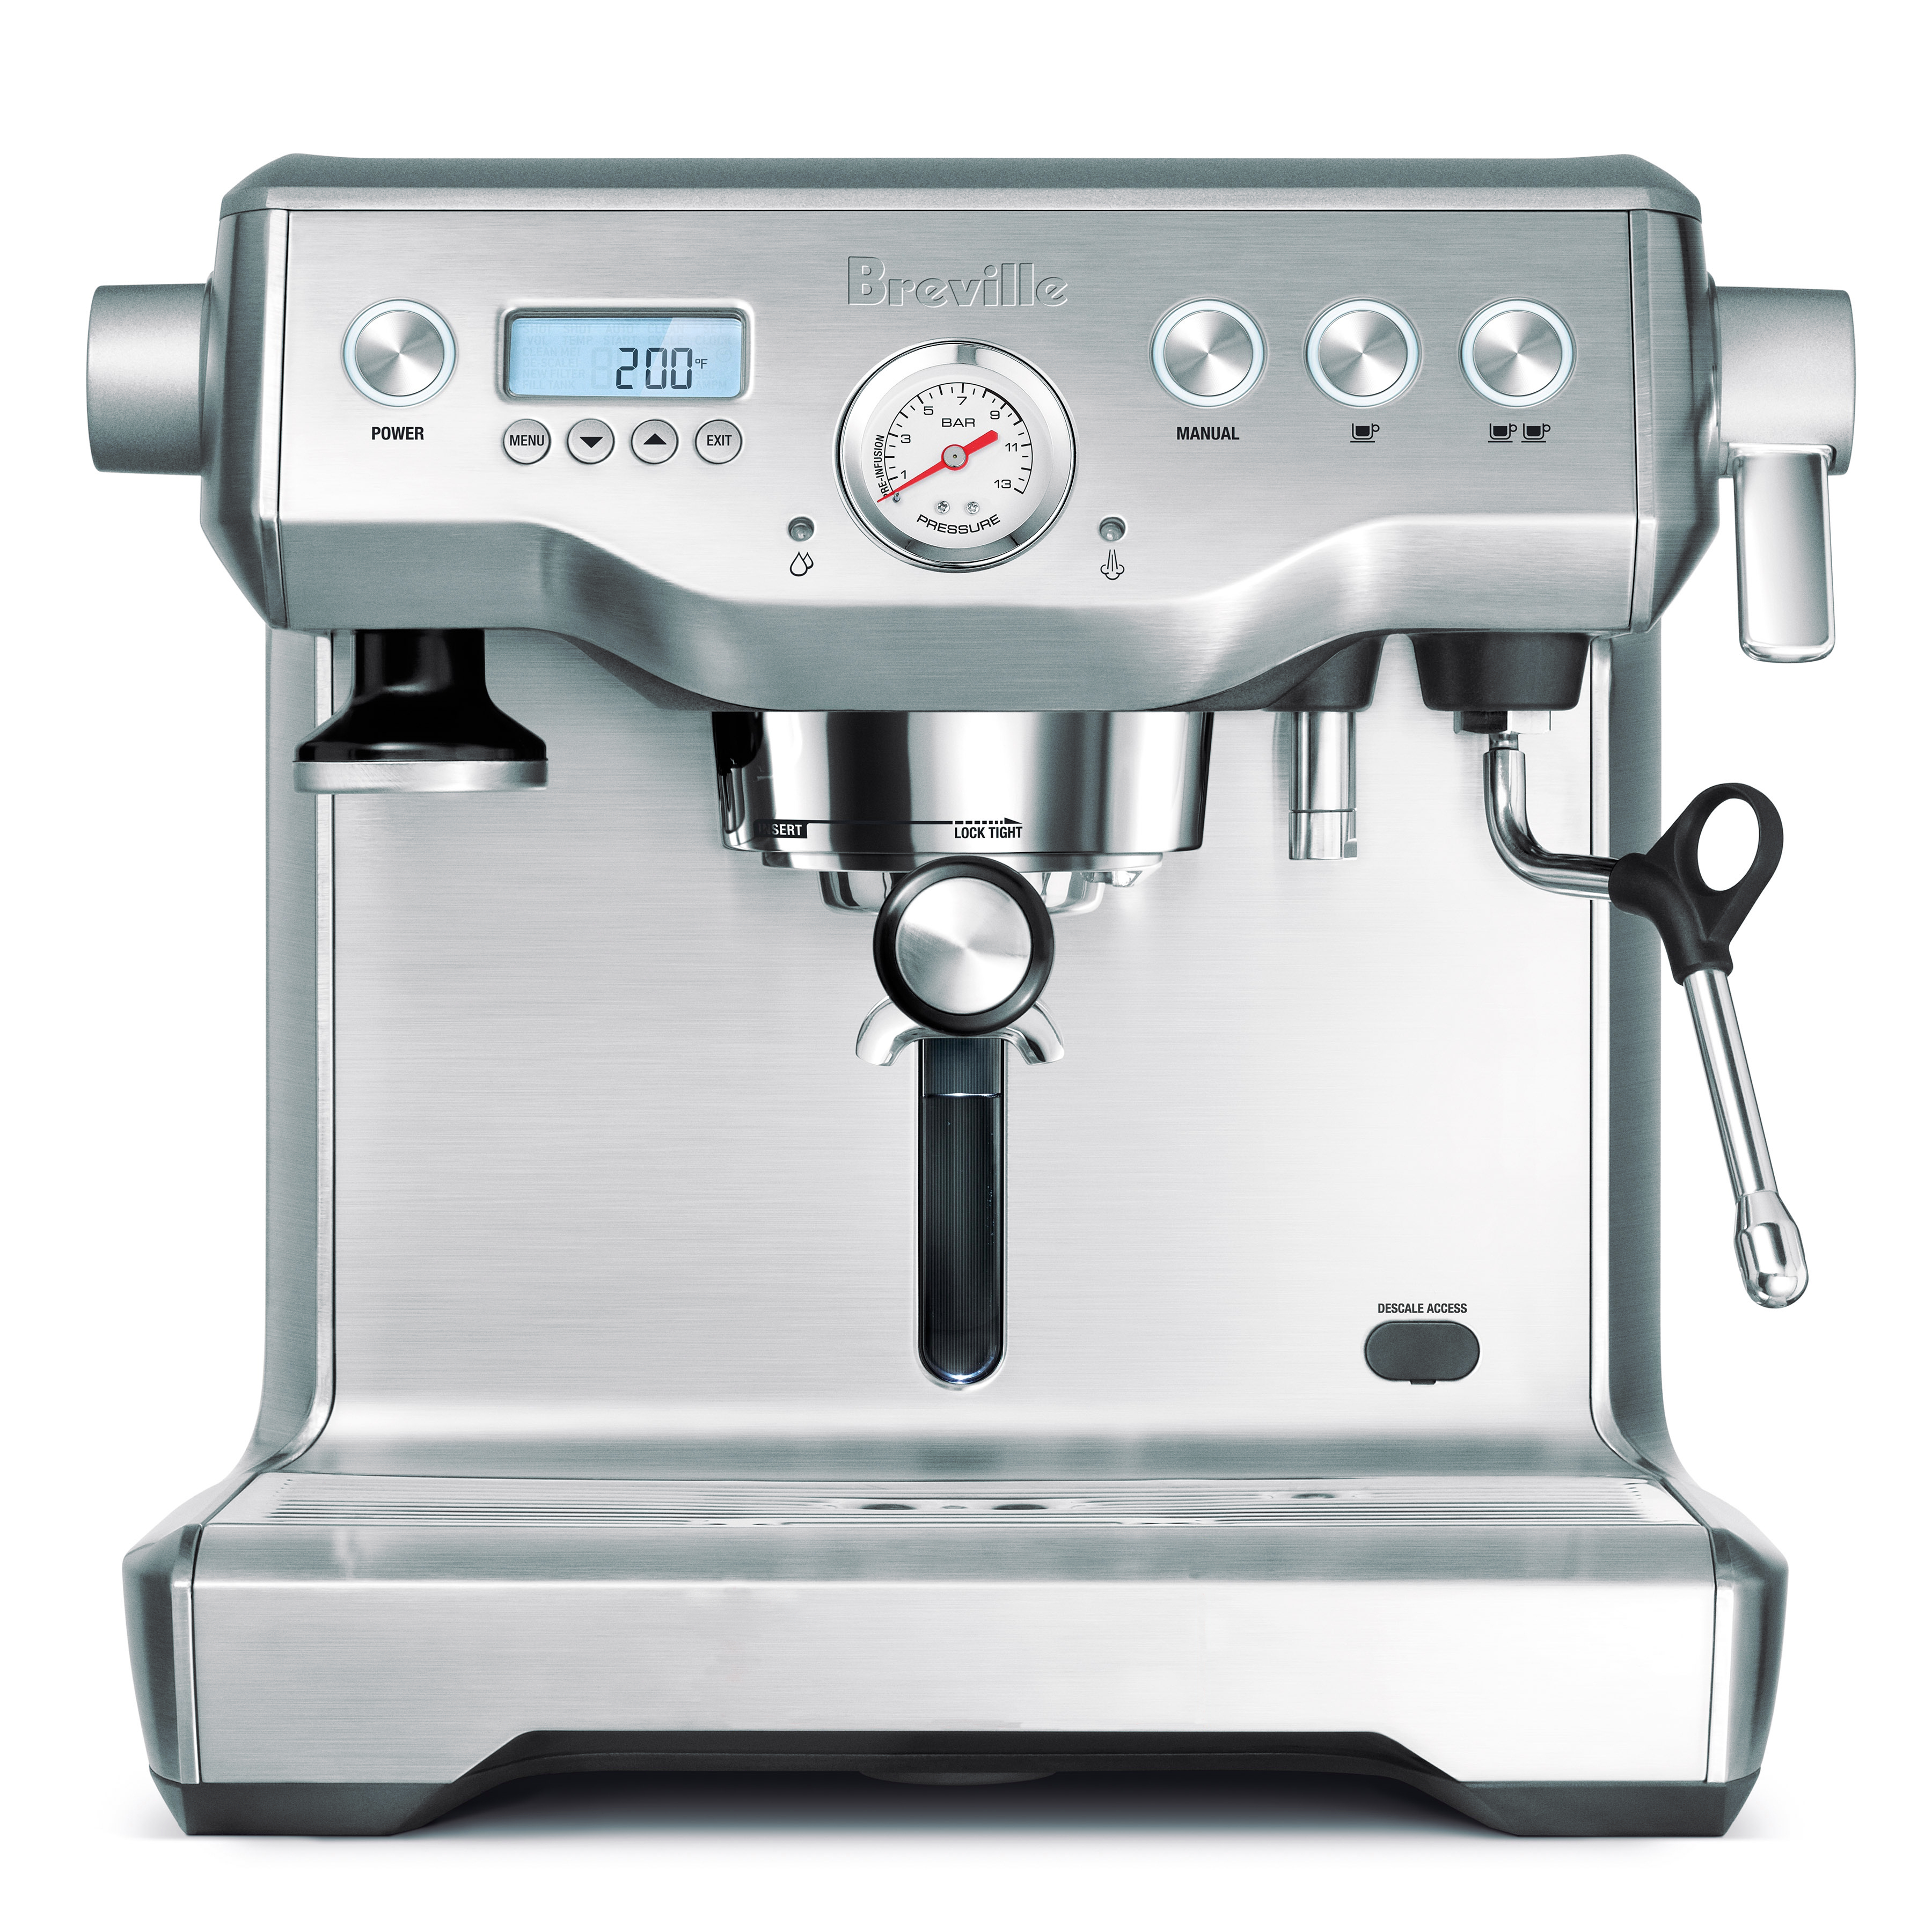 Breville Dual Boiler Stainless Steel Descalable Espresso Machine